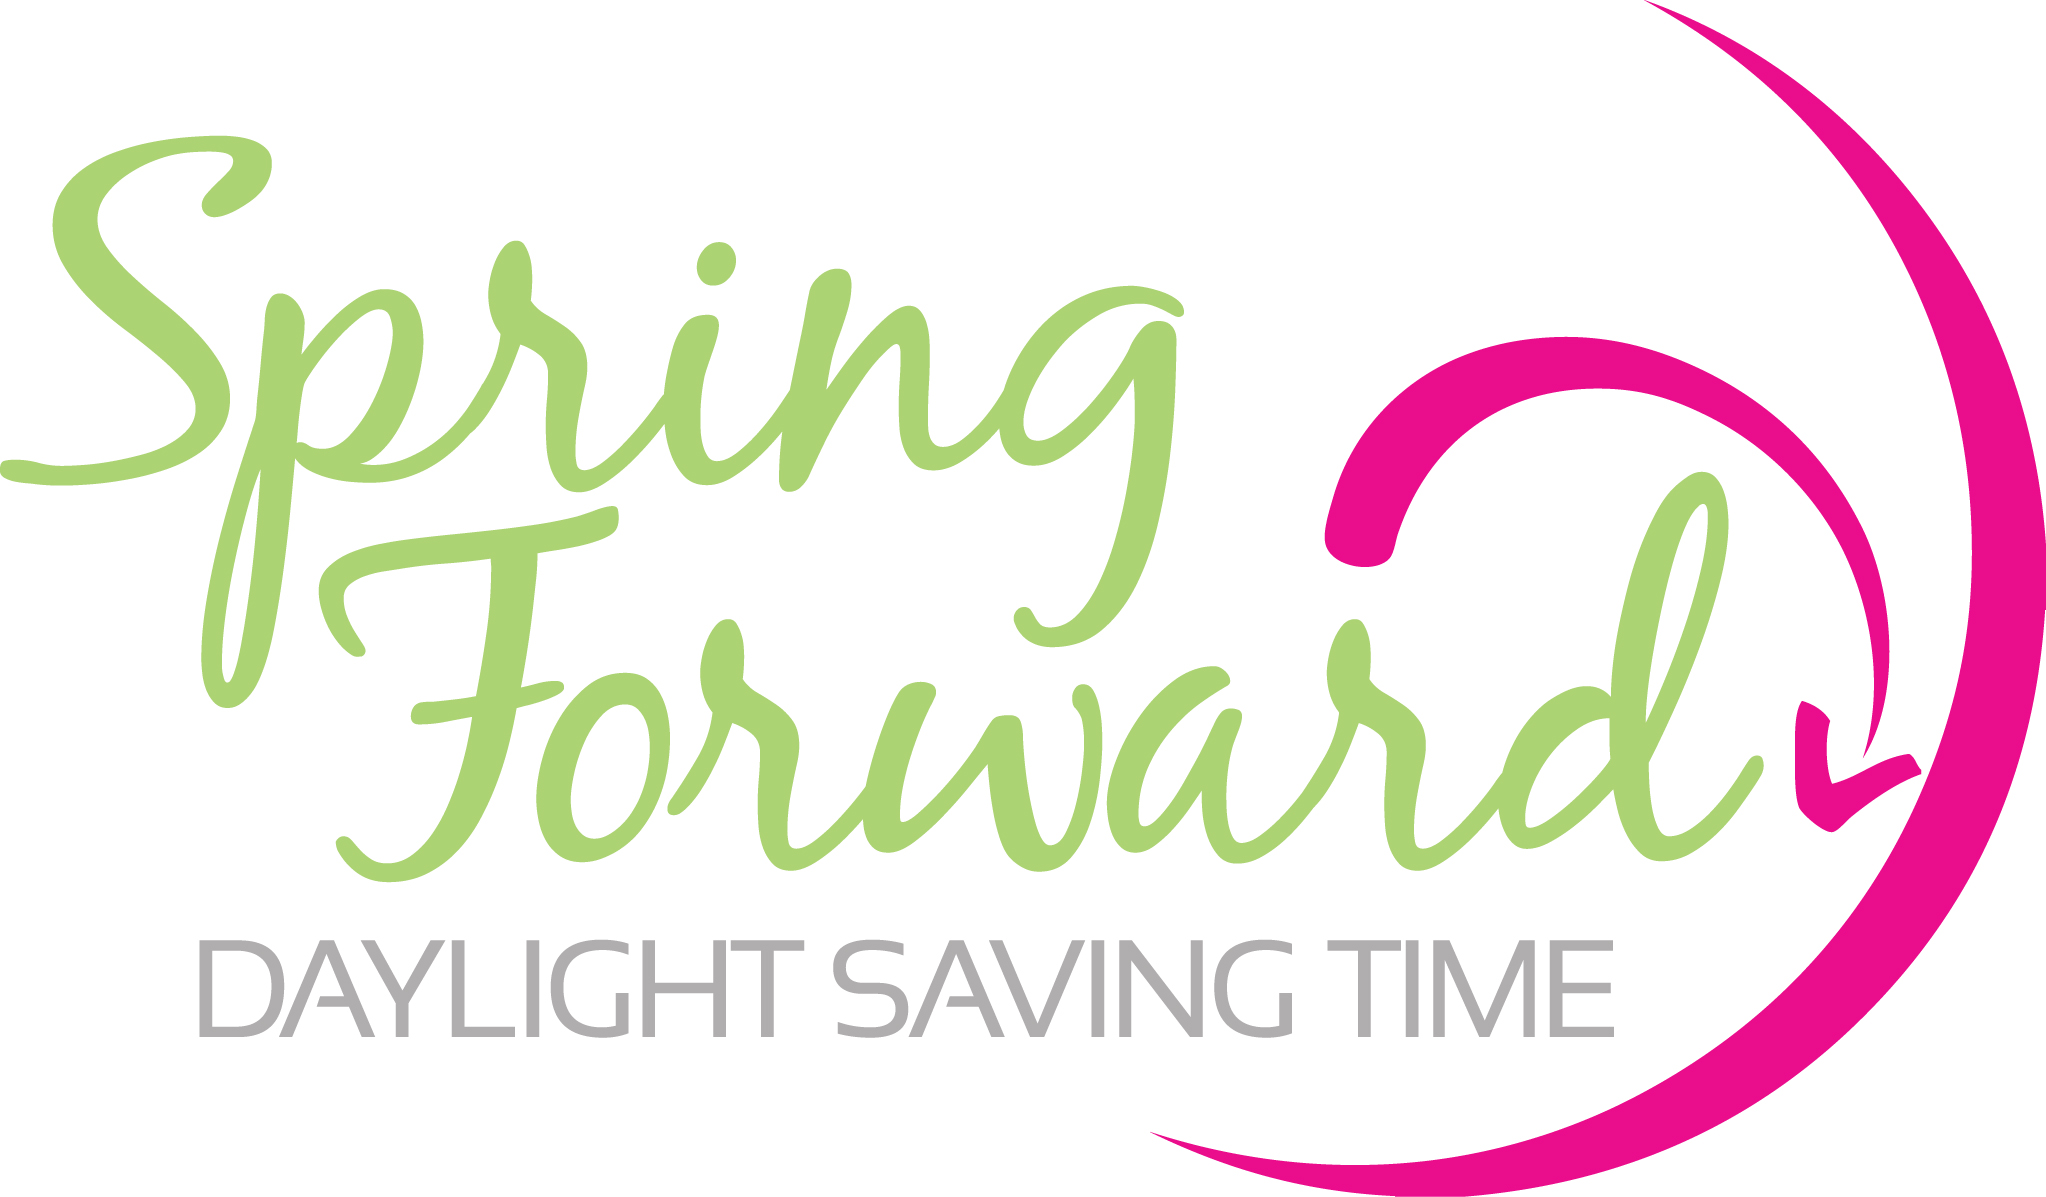 Daylight Savings Time Logo For Free Clipart Clock & Clip Art Images.